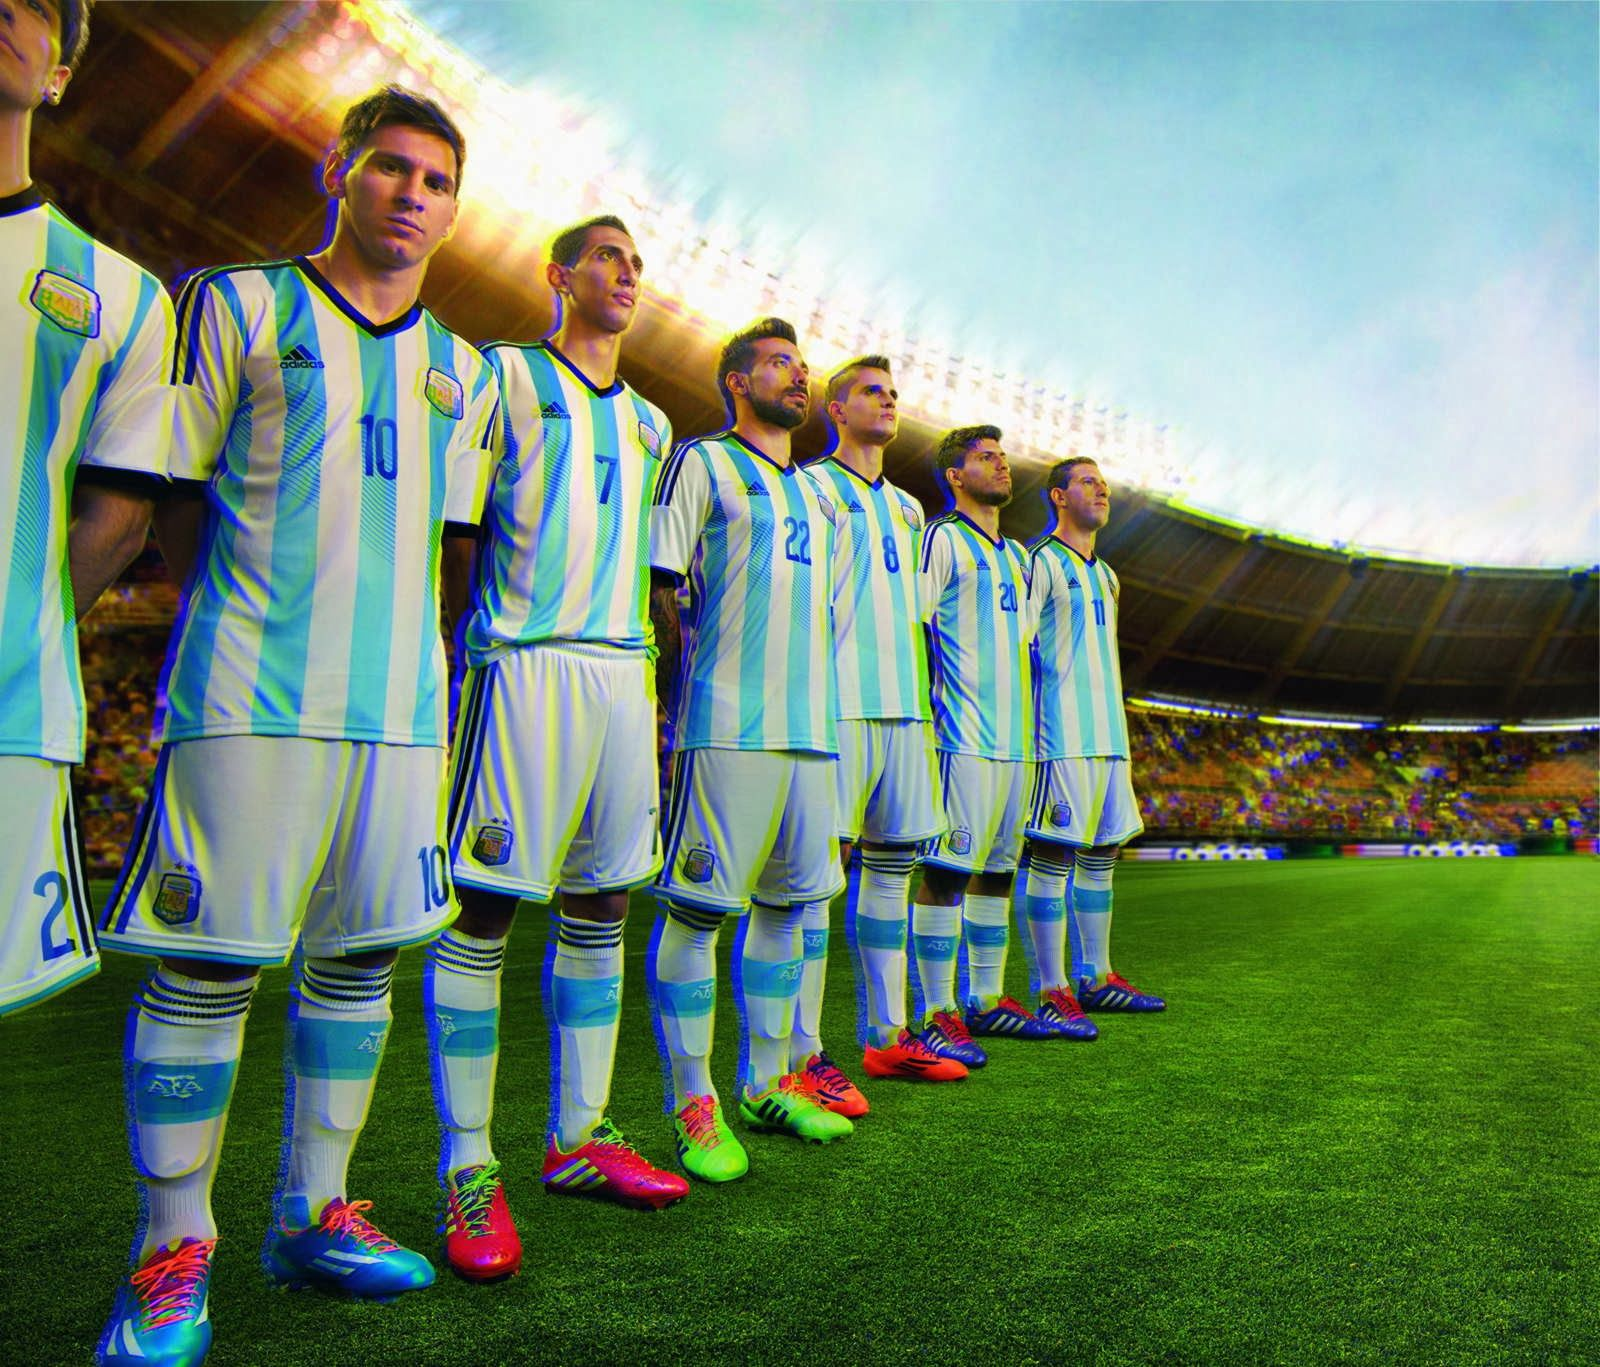 Argentina Team Images Argentina Football Team 2014 World Cup Wallpaper High Definition Argentina Football Team Argentina Football World Cup Shirts